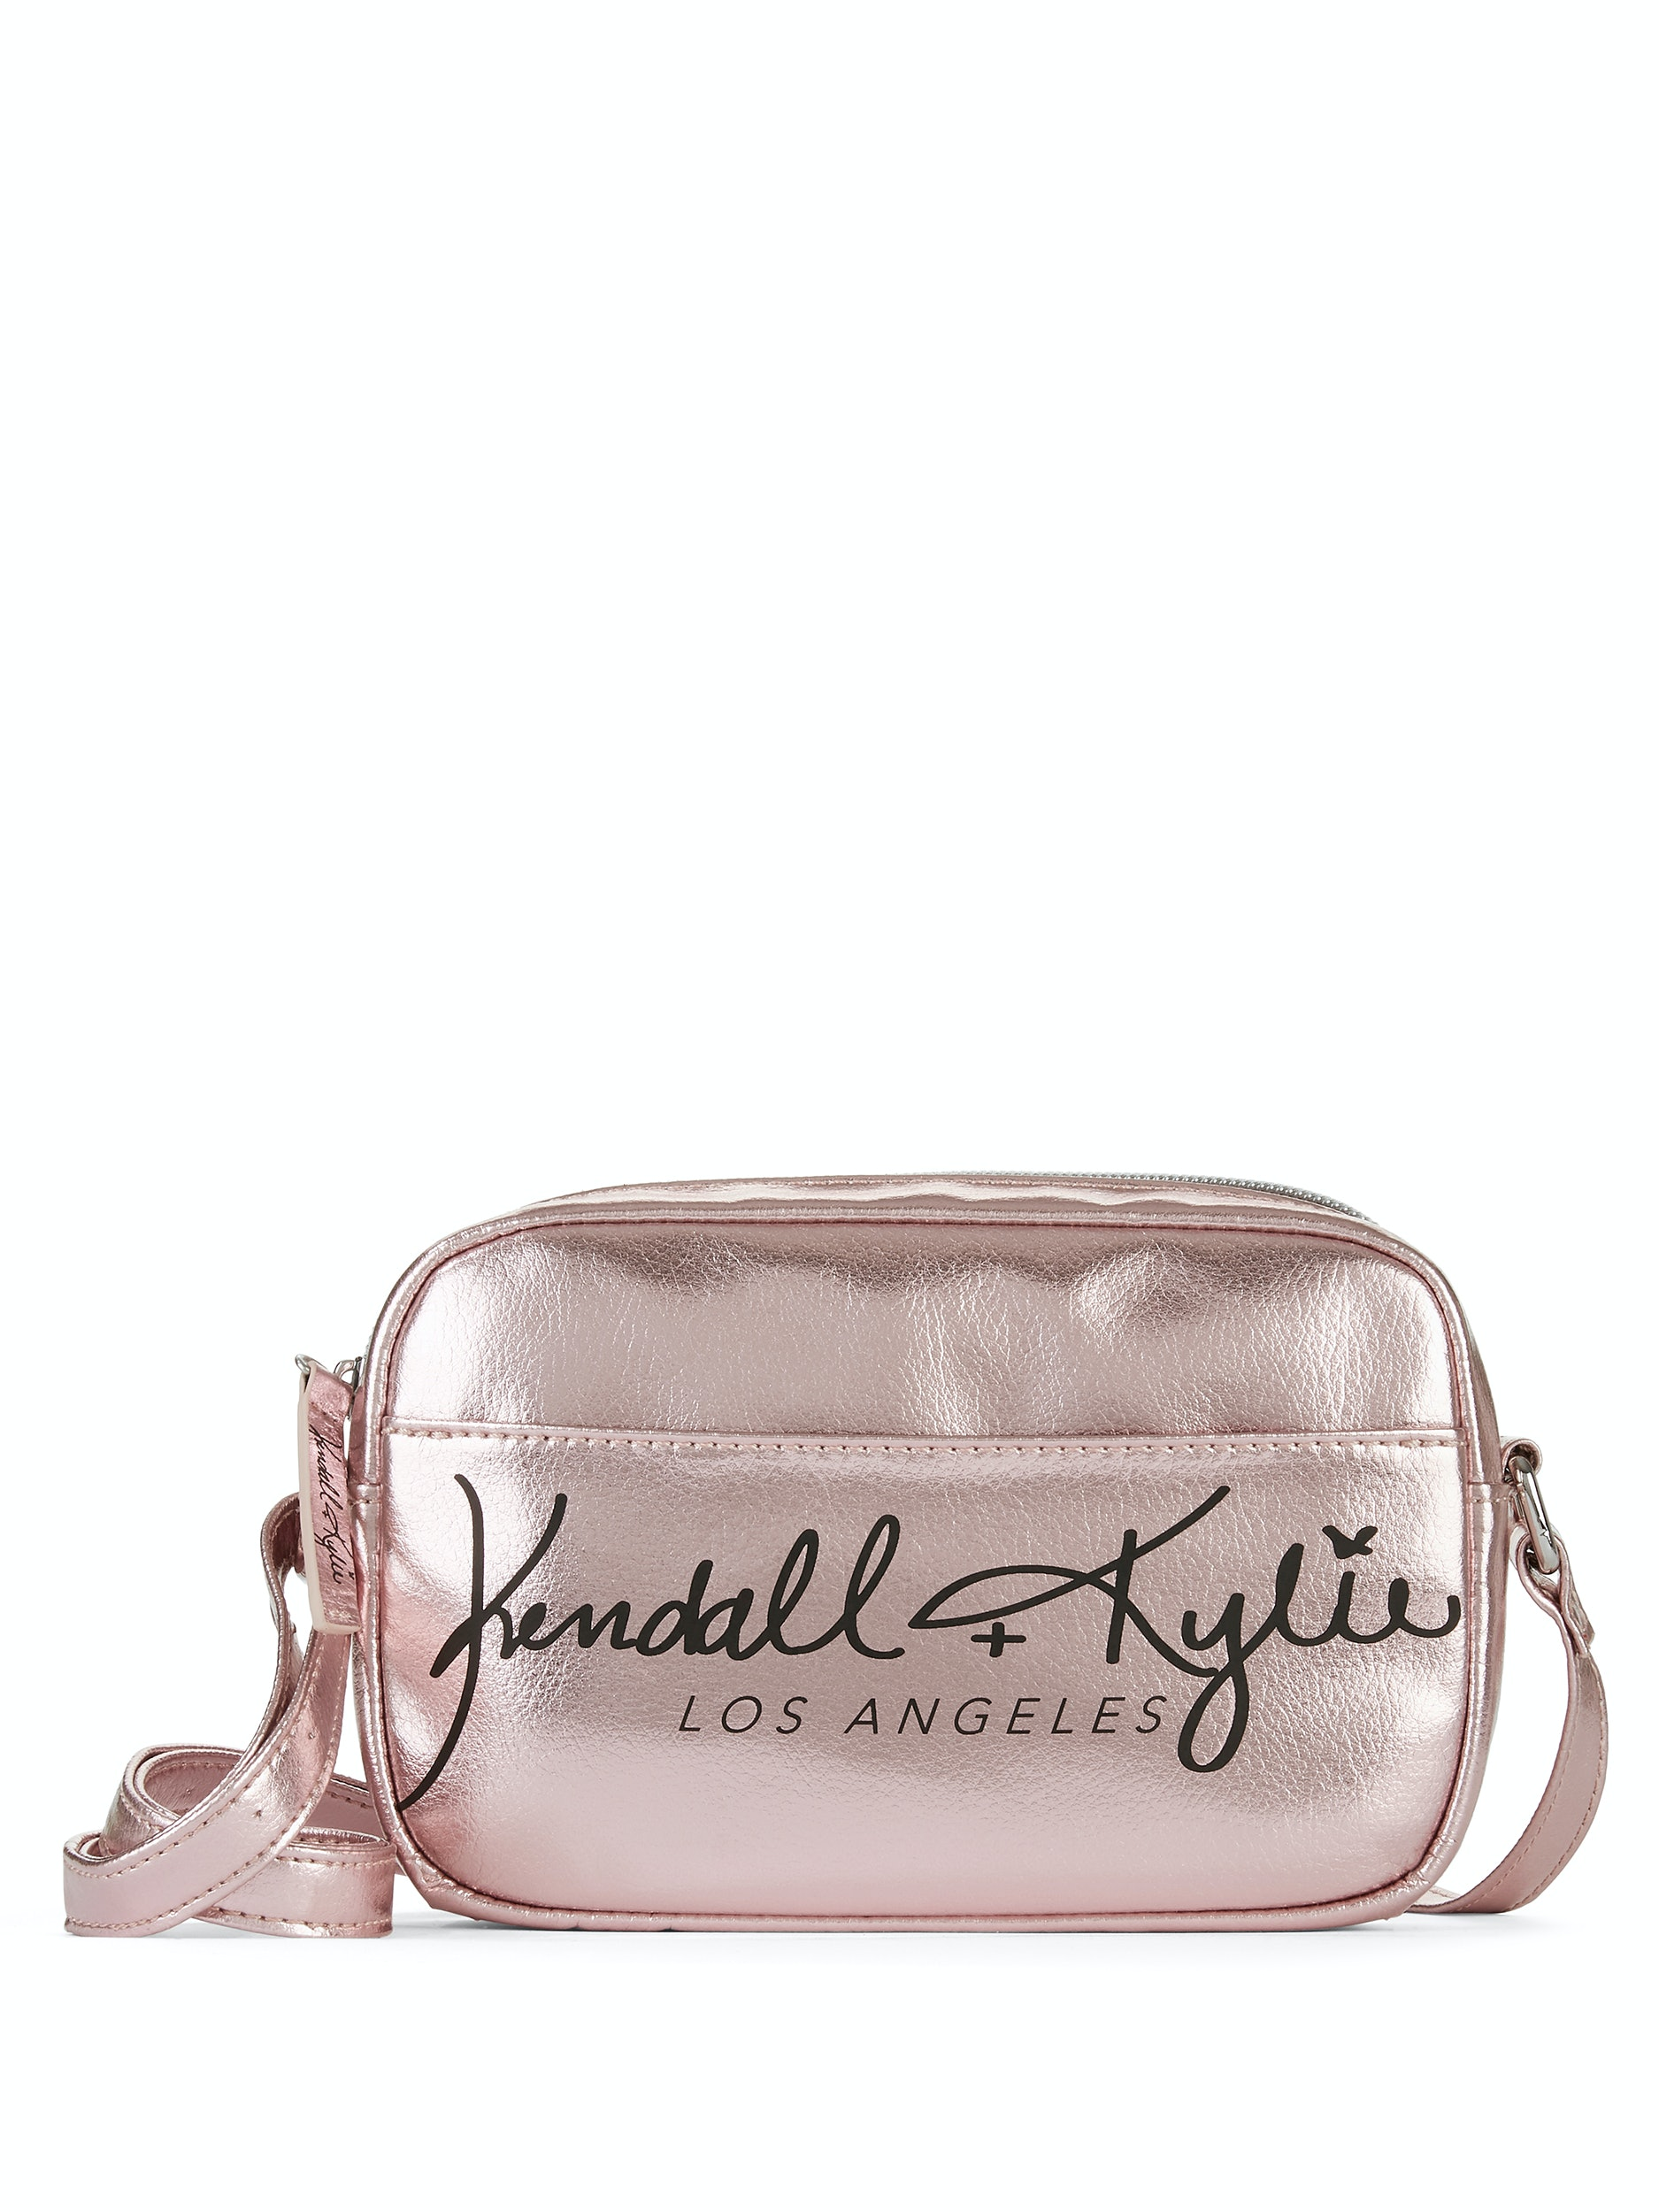 size 40 875bf a2bd6 Walmart.com Is Having An Epic Sale On Kendall & Kylie's Handbag Line ...